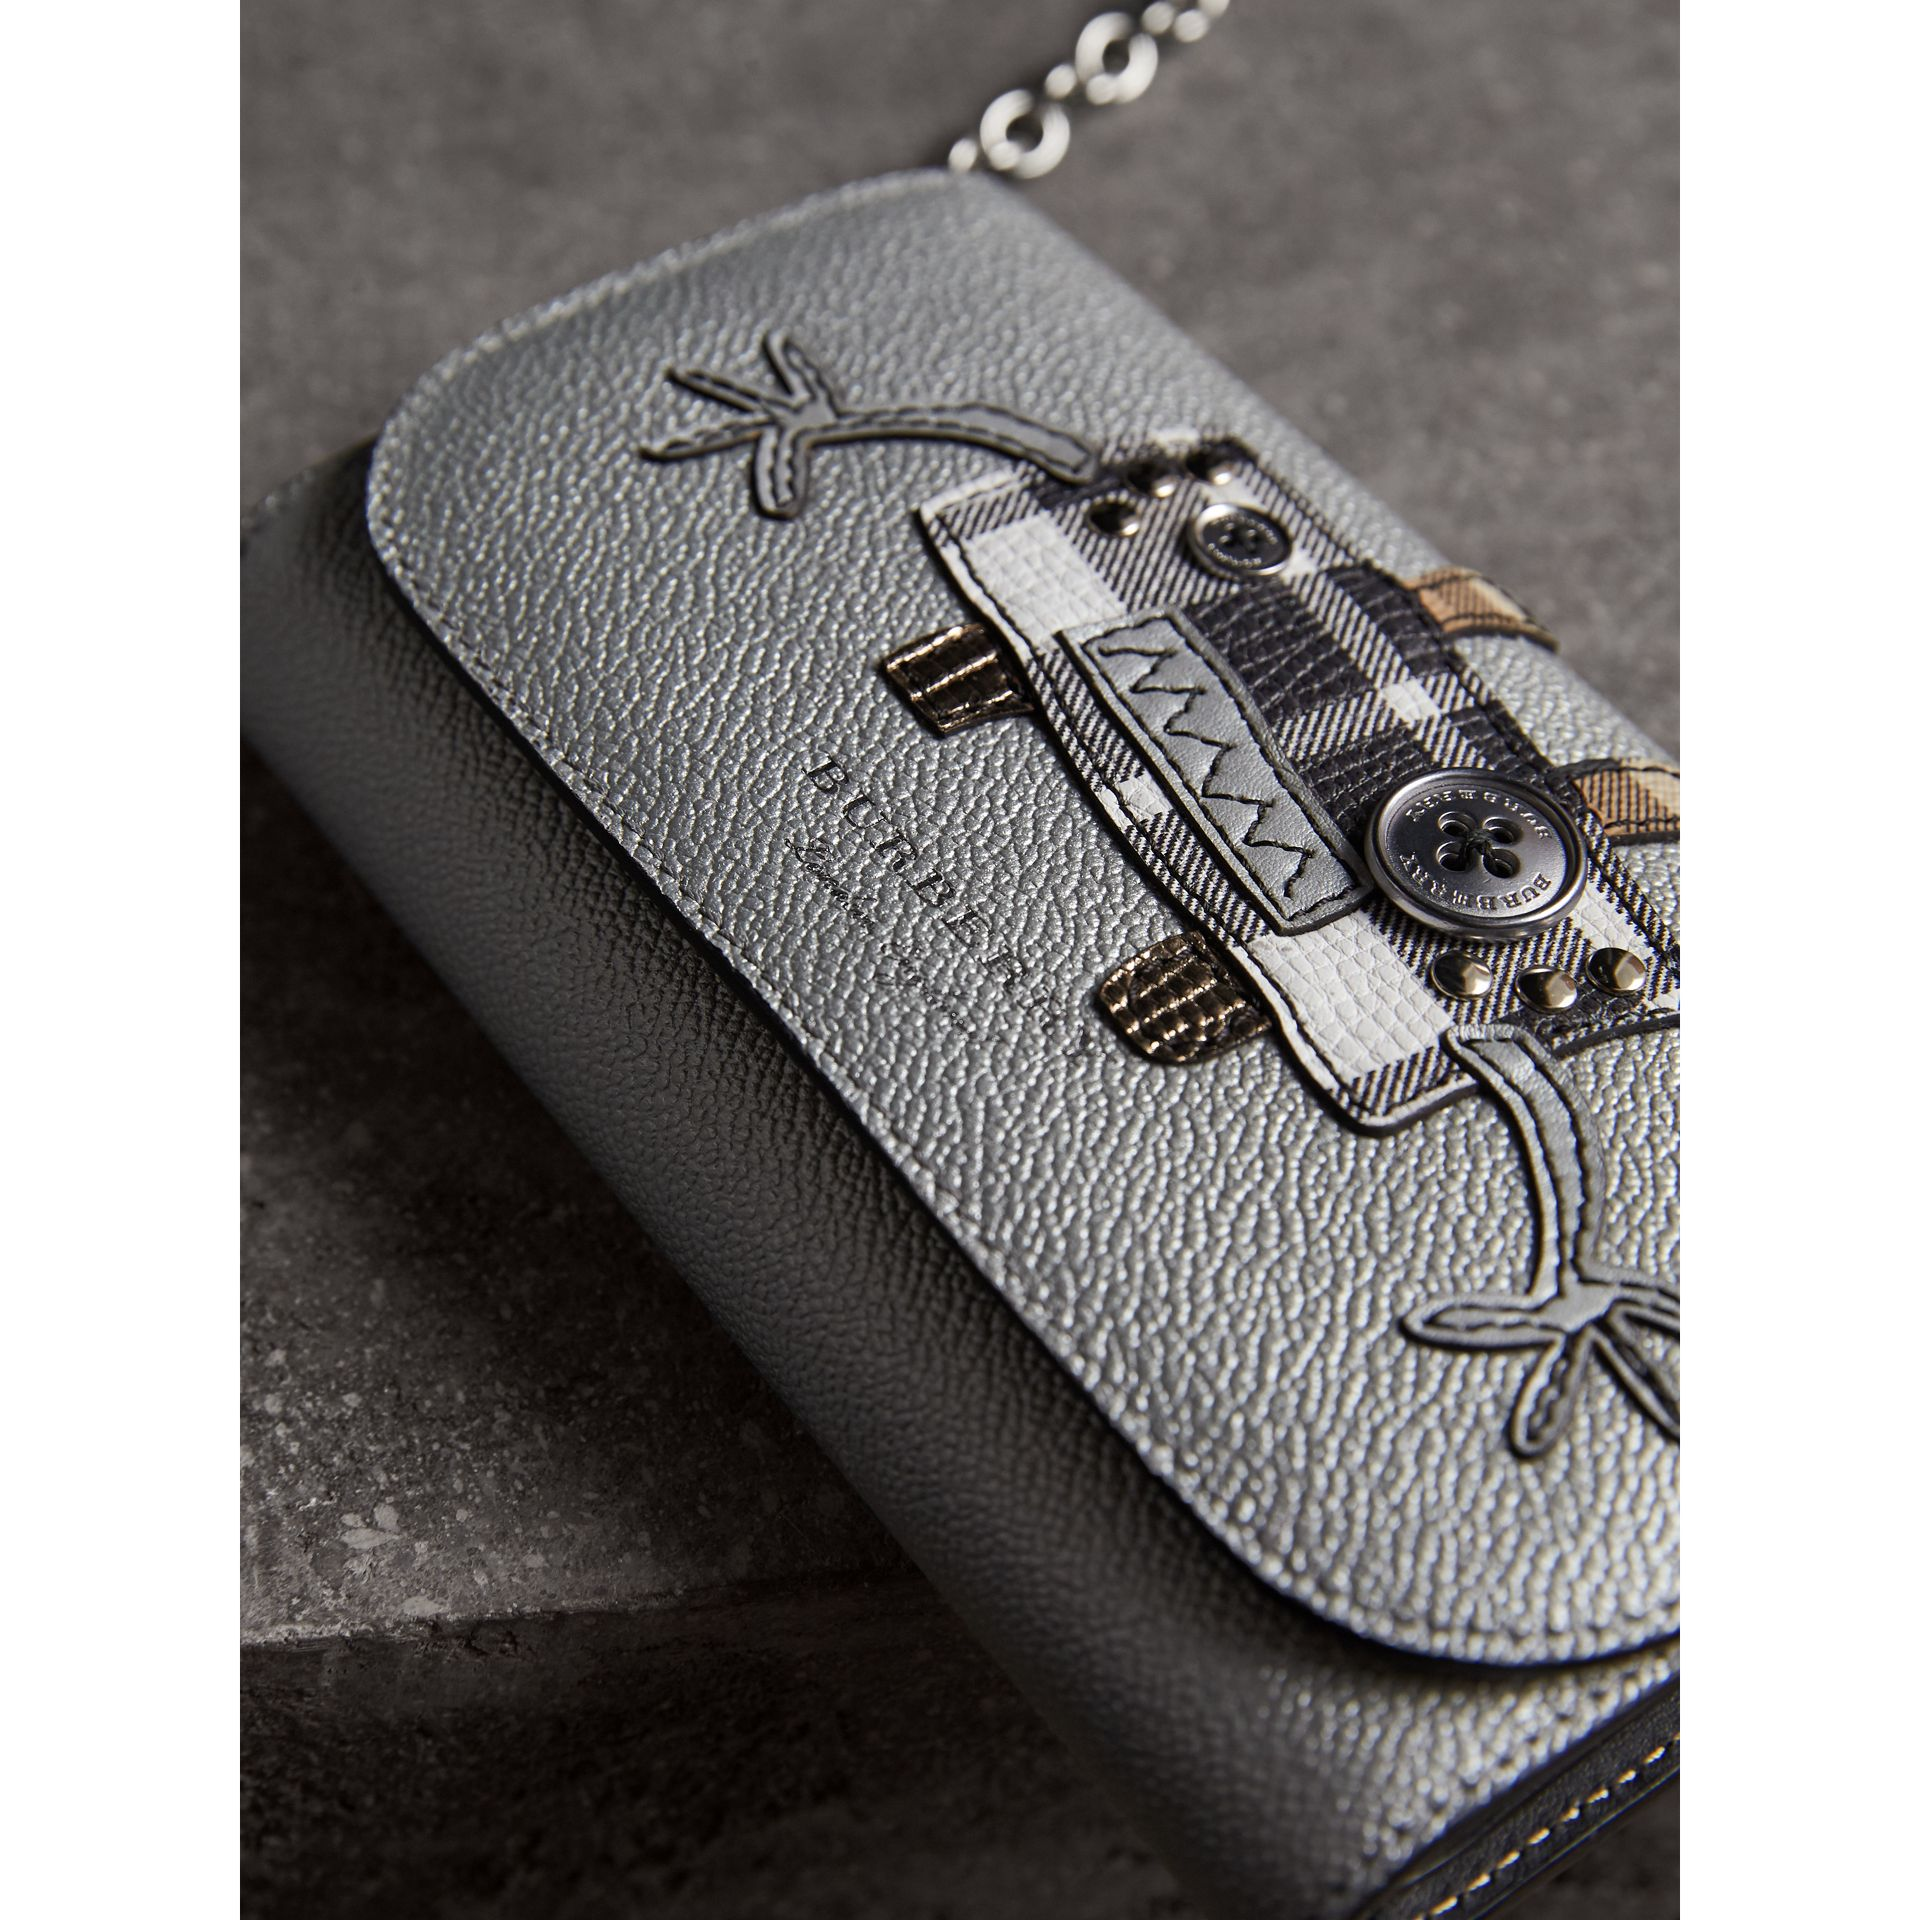 Creature Appliqué Metallic Leather Wallet with Chain in Silver/multicolour - Women | Burberry Singapore - gallery image 2